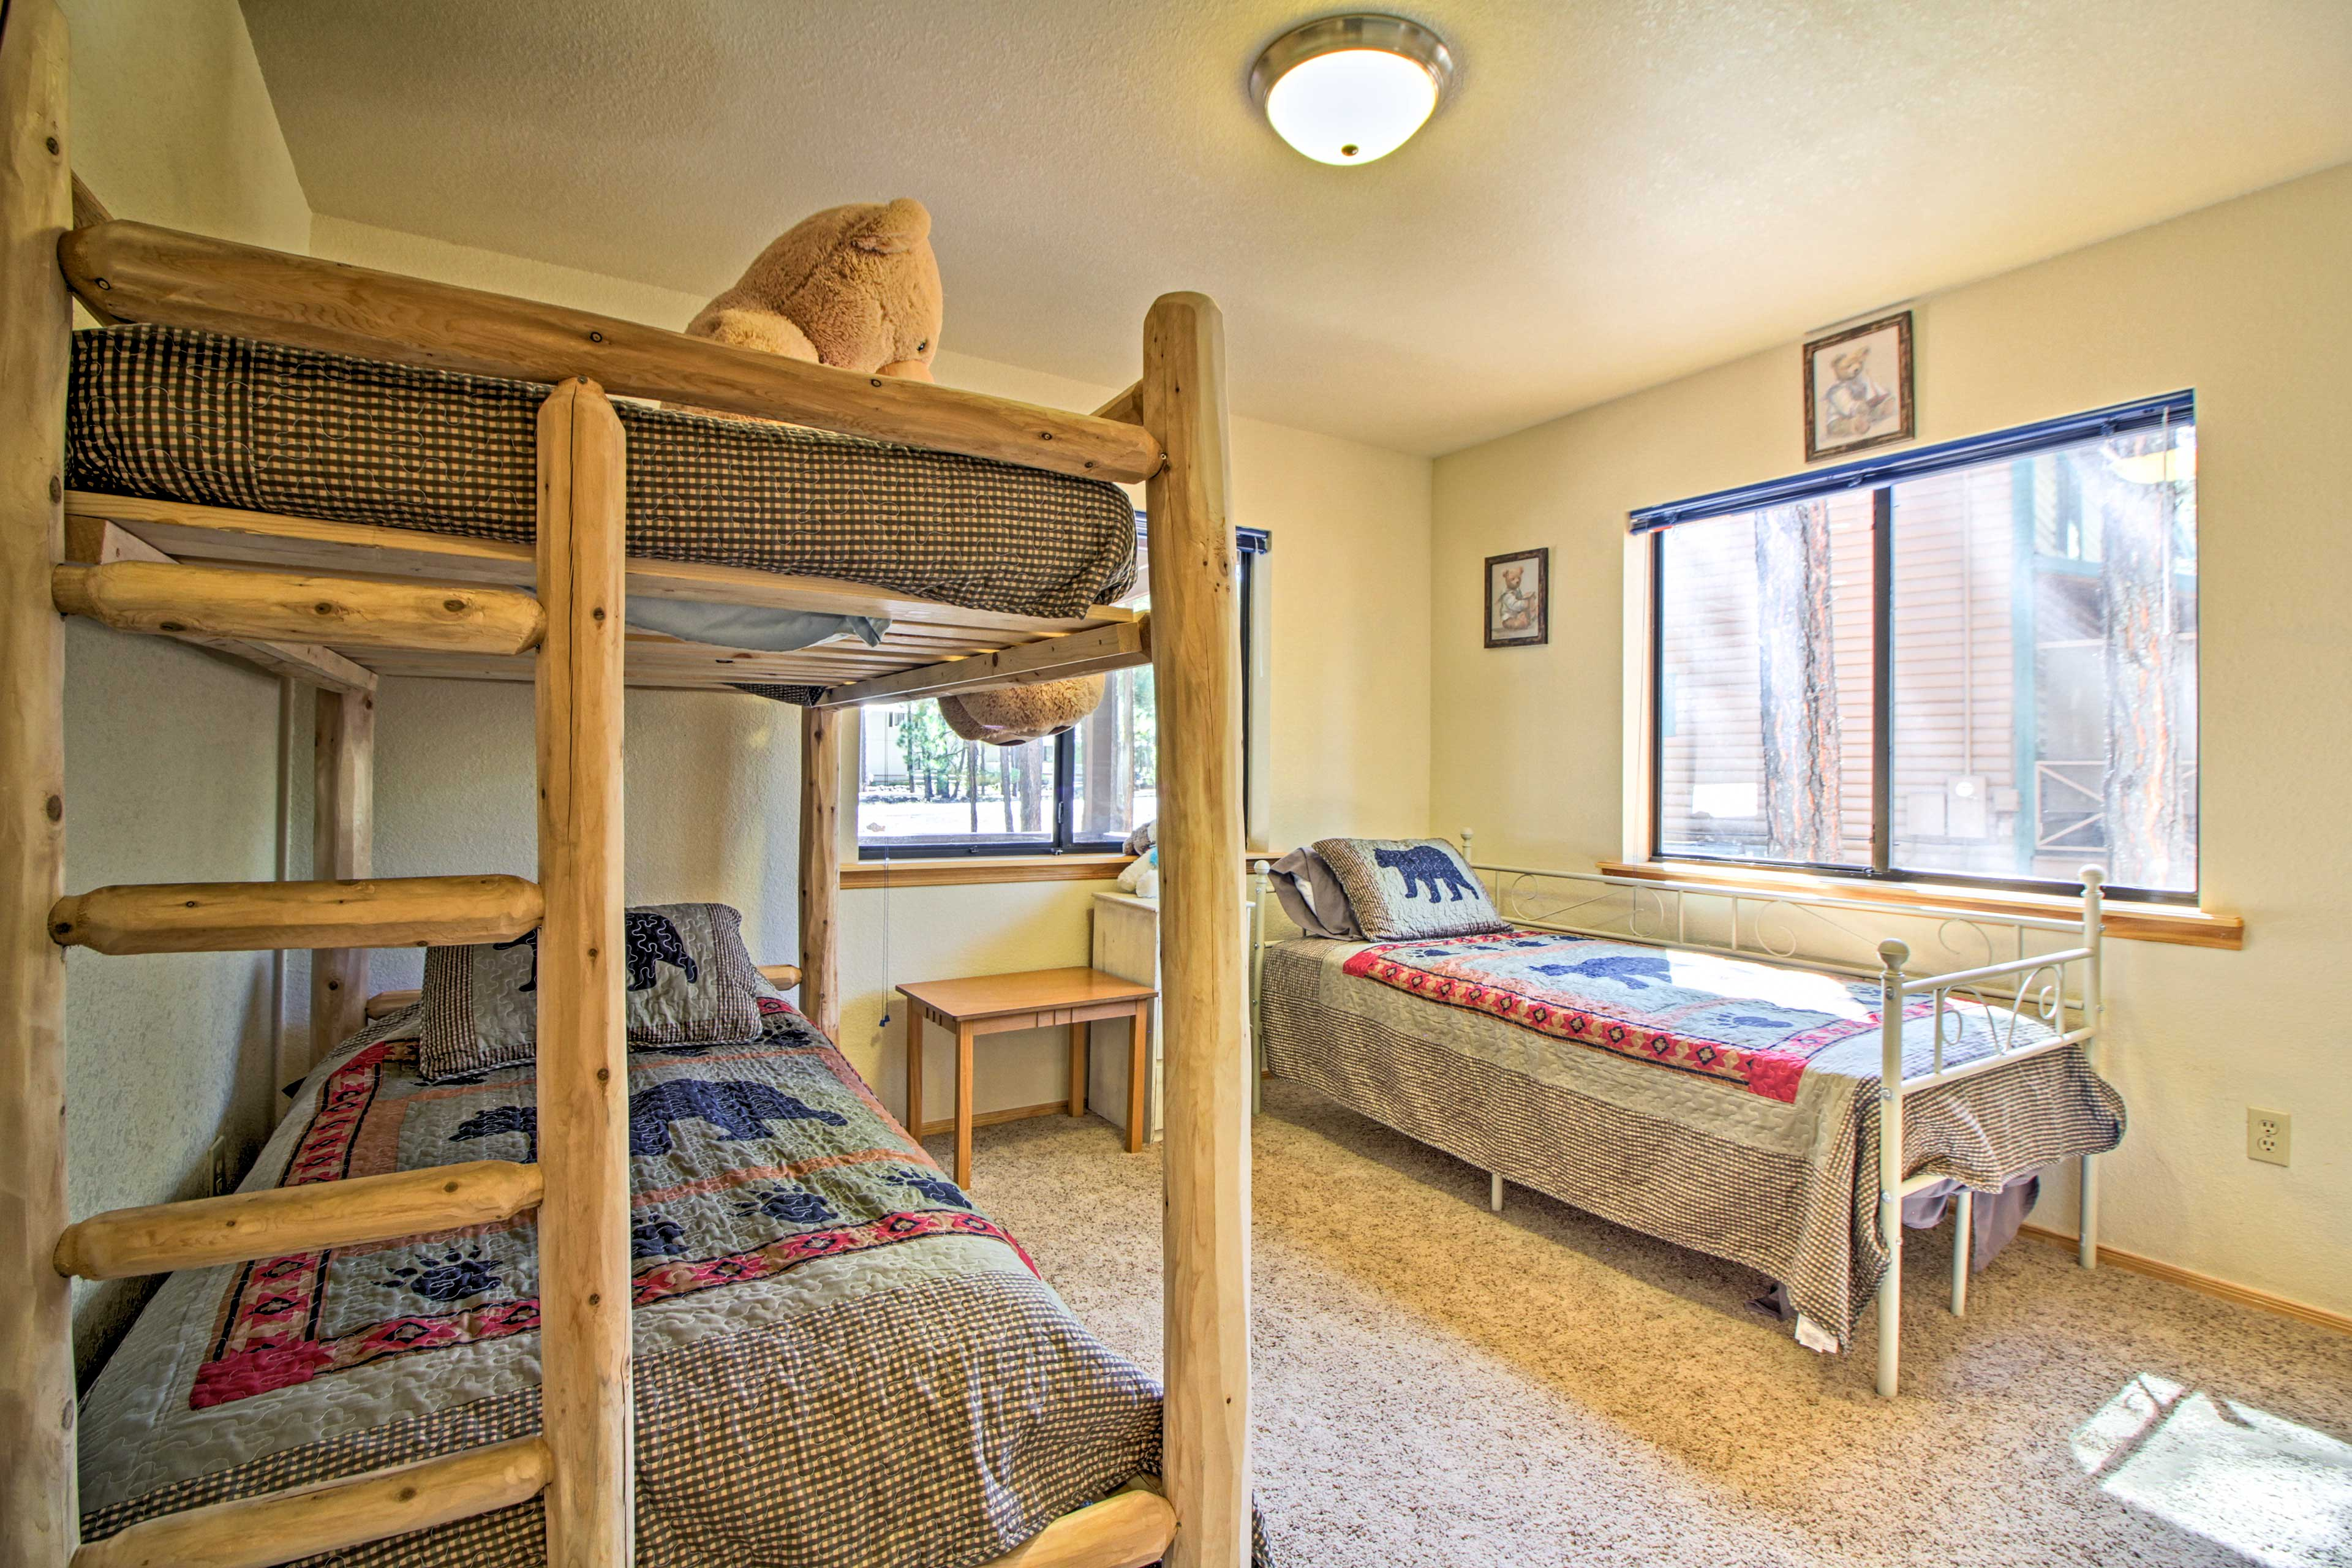 Up to 3 guests can sleep in this bedroom!